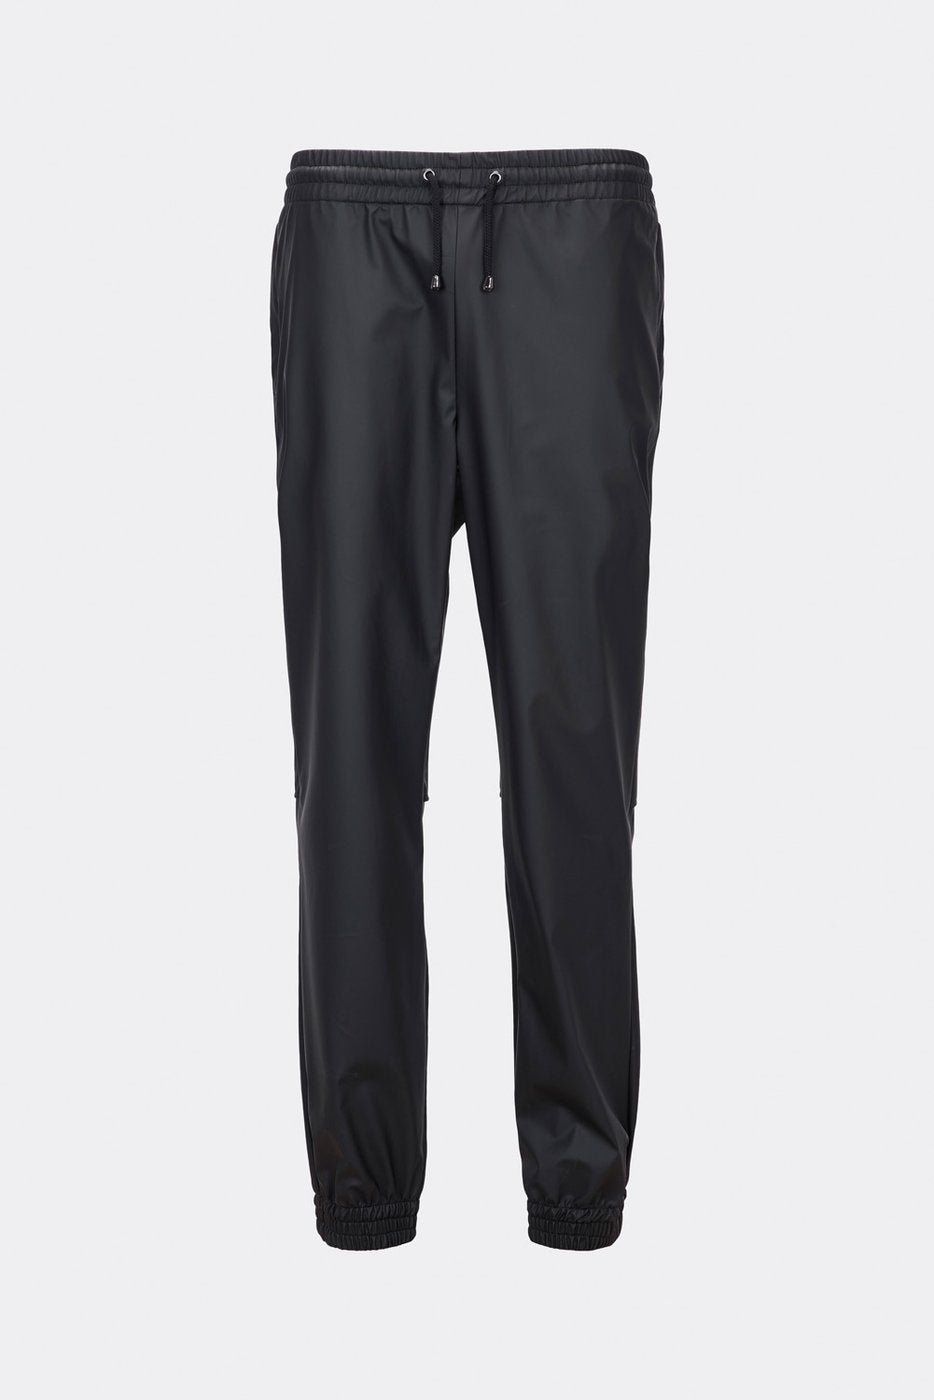 Rains - Trousers Black